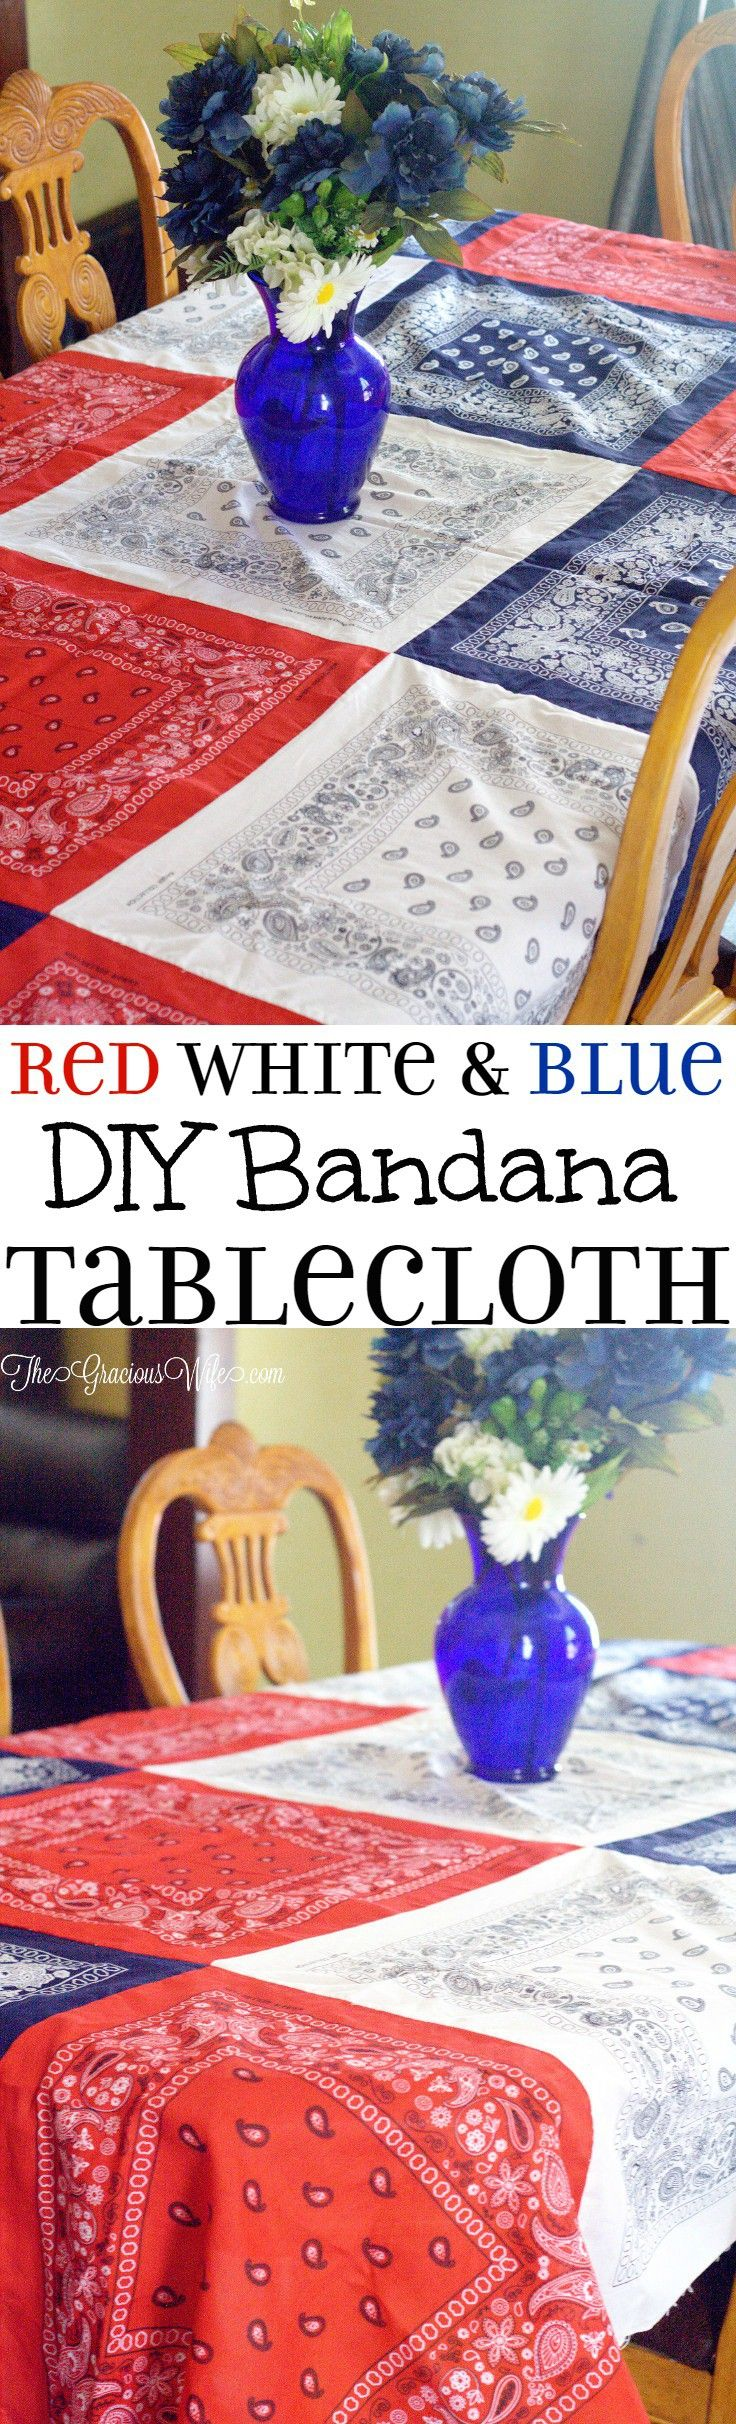 frugal craft ideas easy diy bandana tablecloth frugal 2057